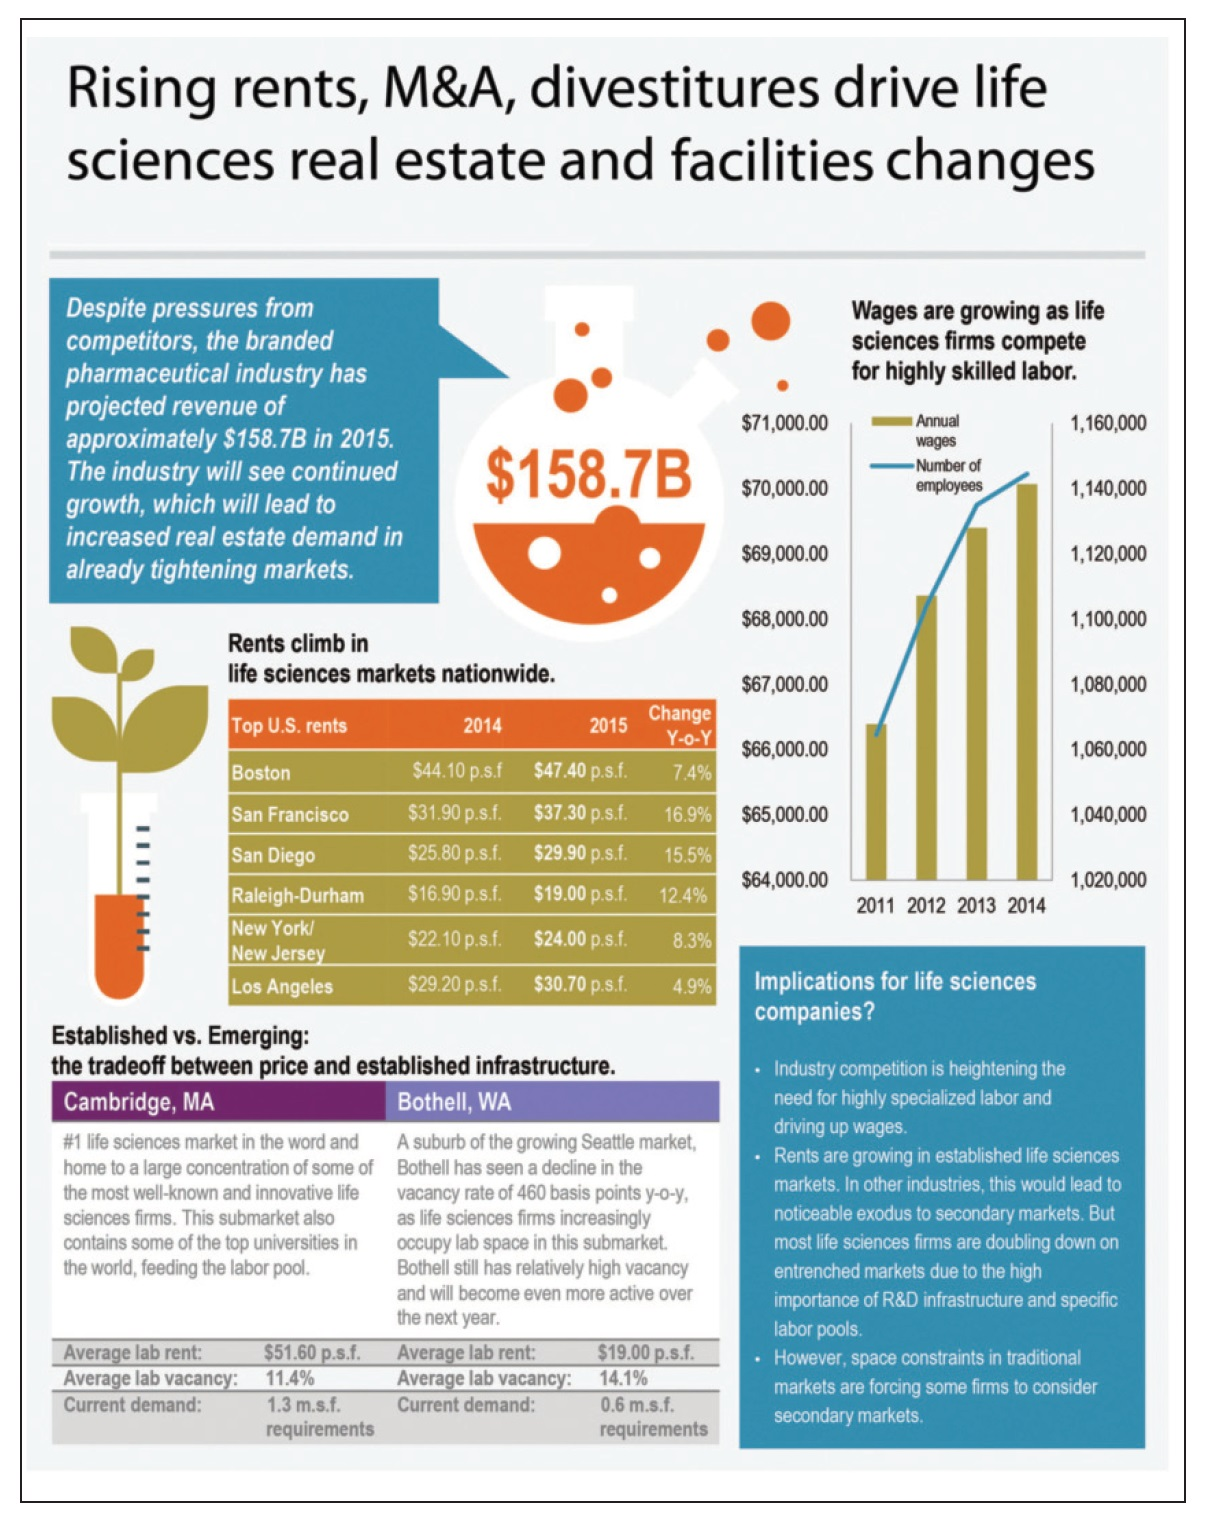 Figure 1 Rising rents, M&A, divestitures drive life sciences real estate and facilities changes infographic